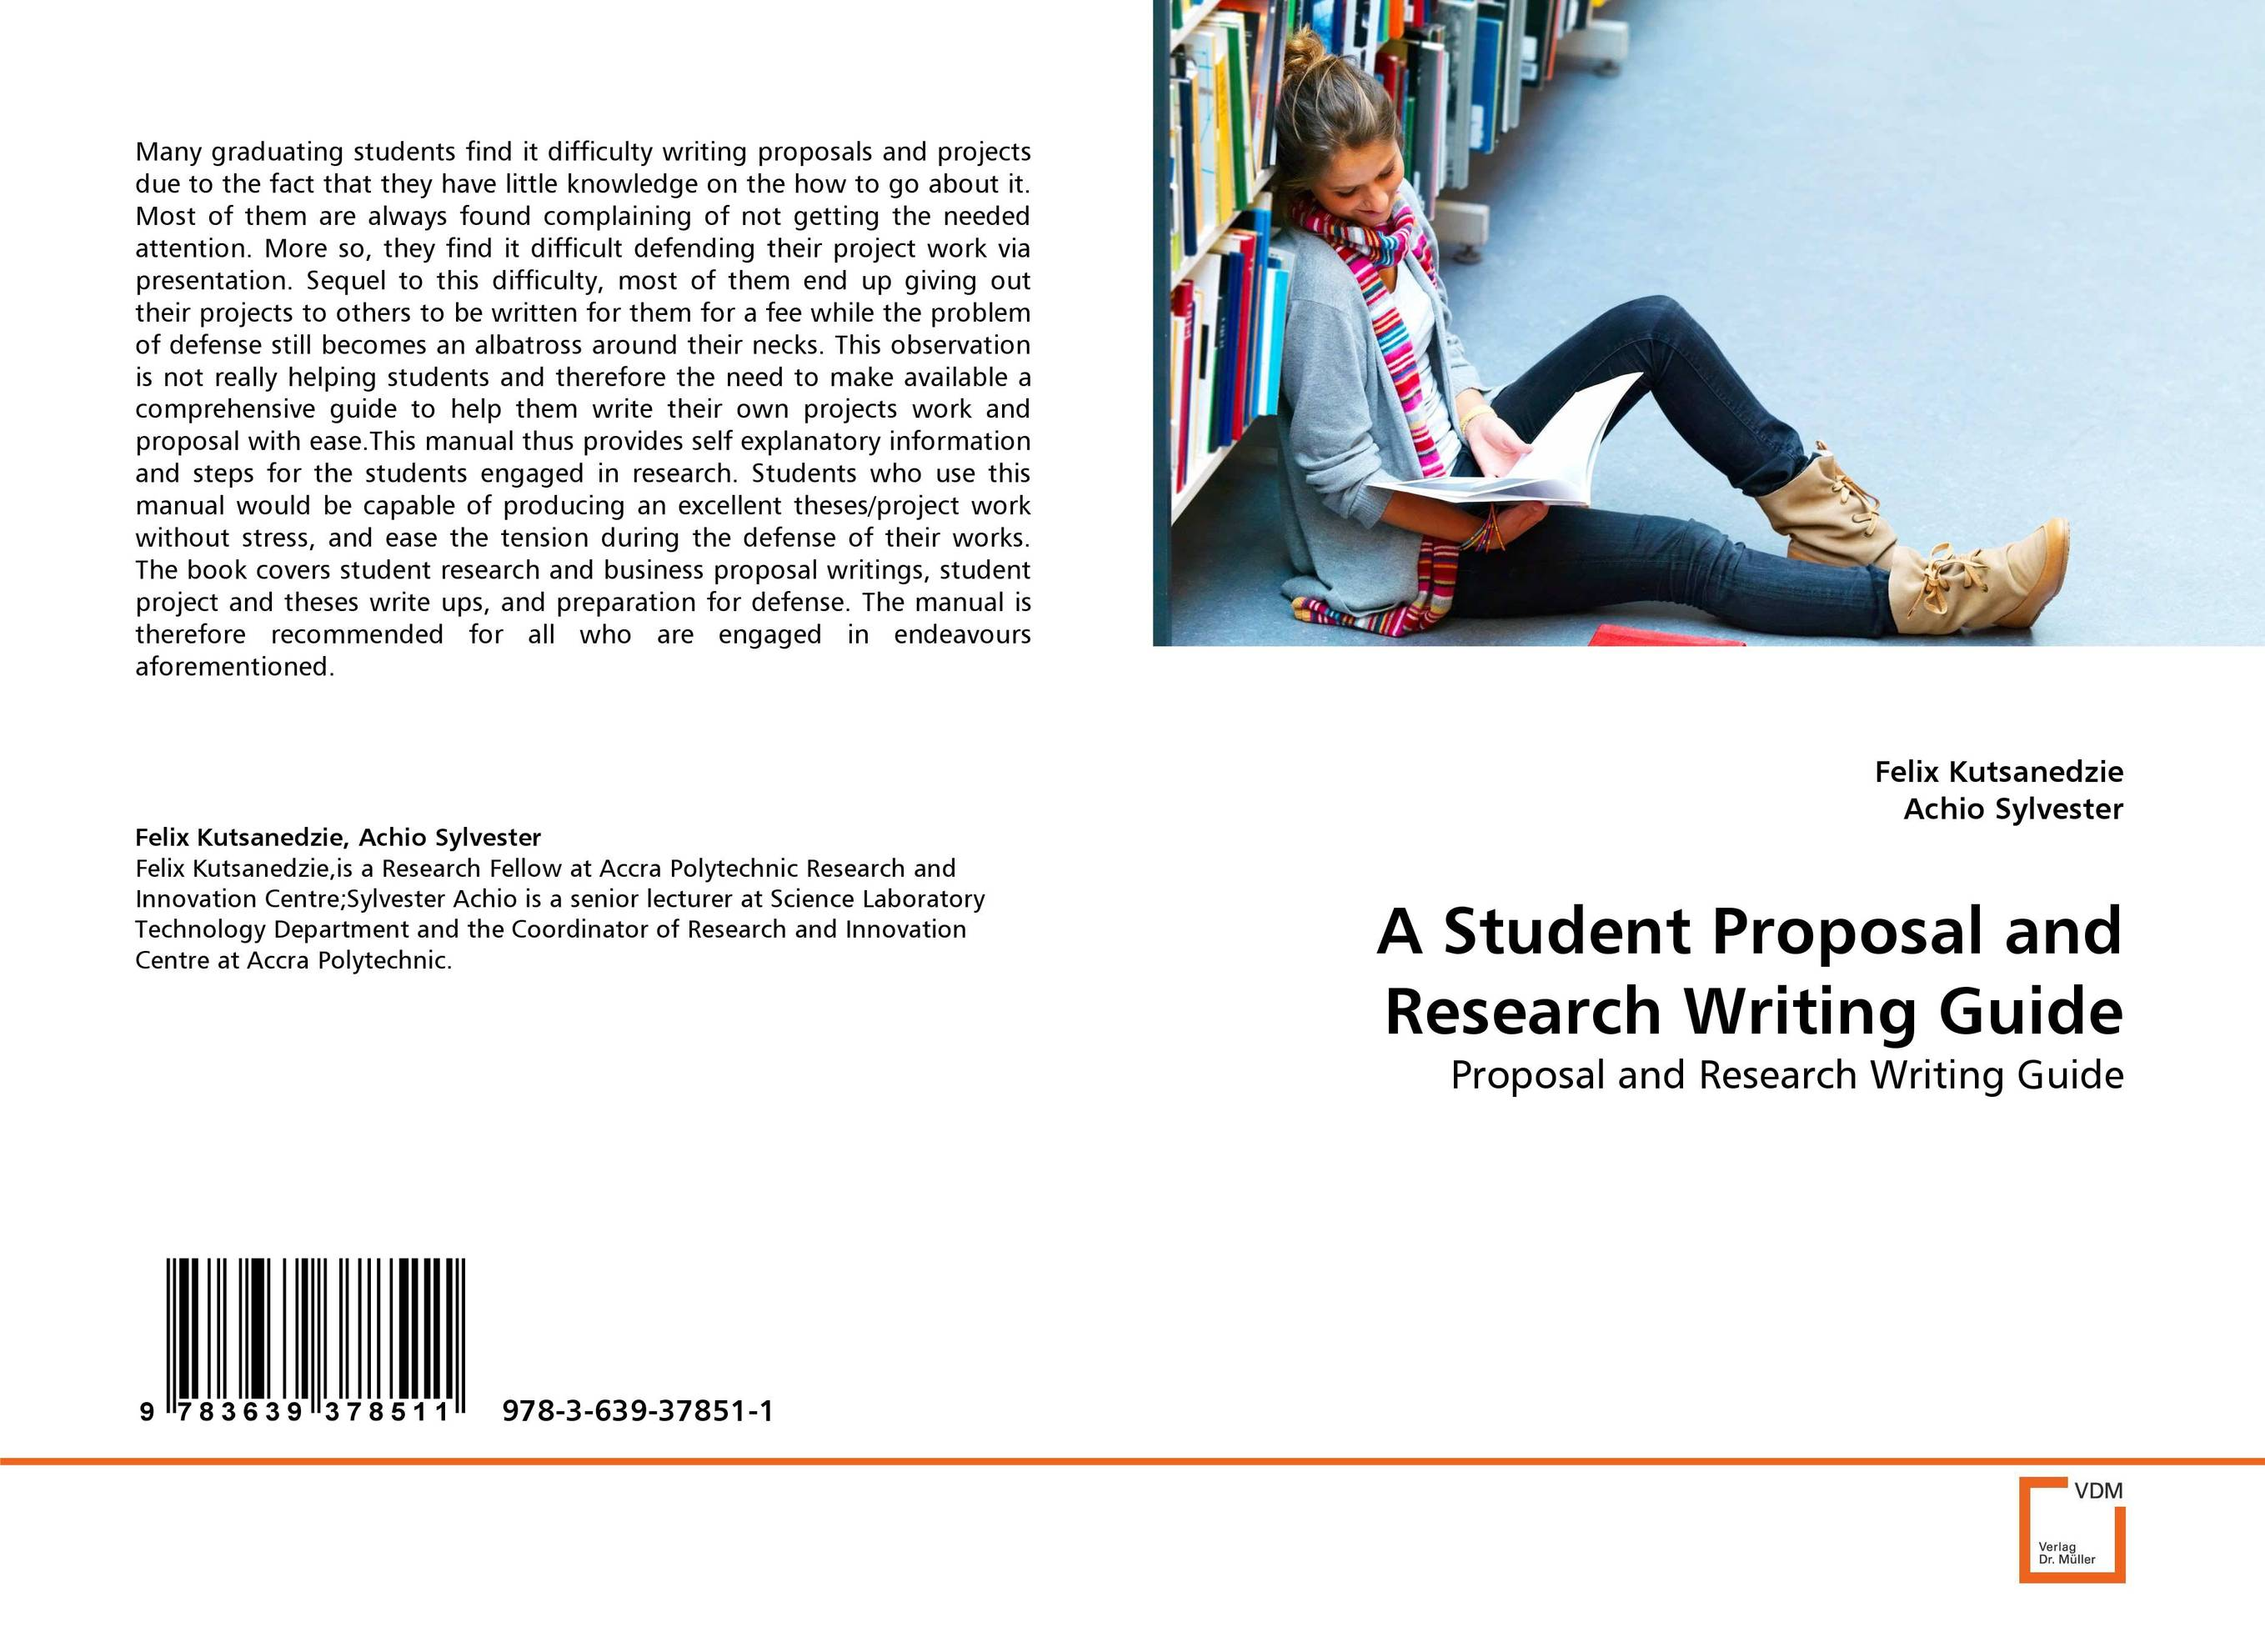 A Student Proposal and Research Writing Guide